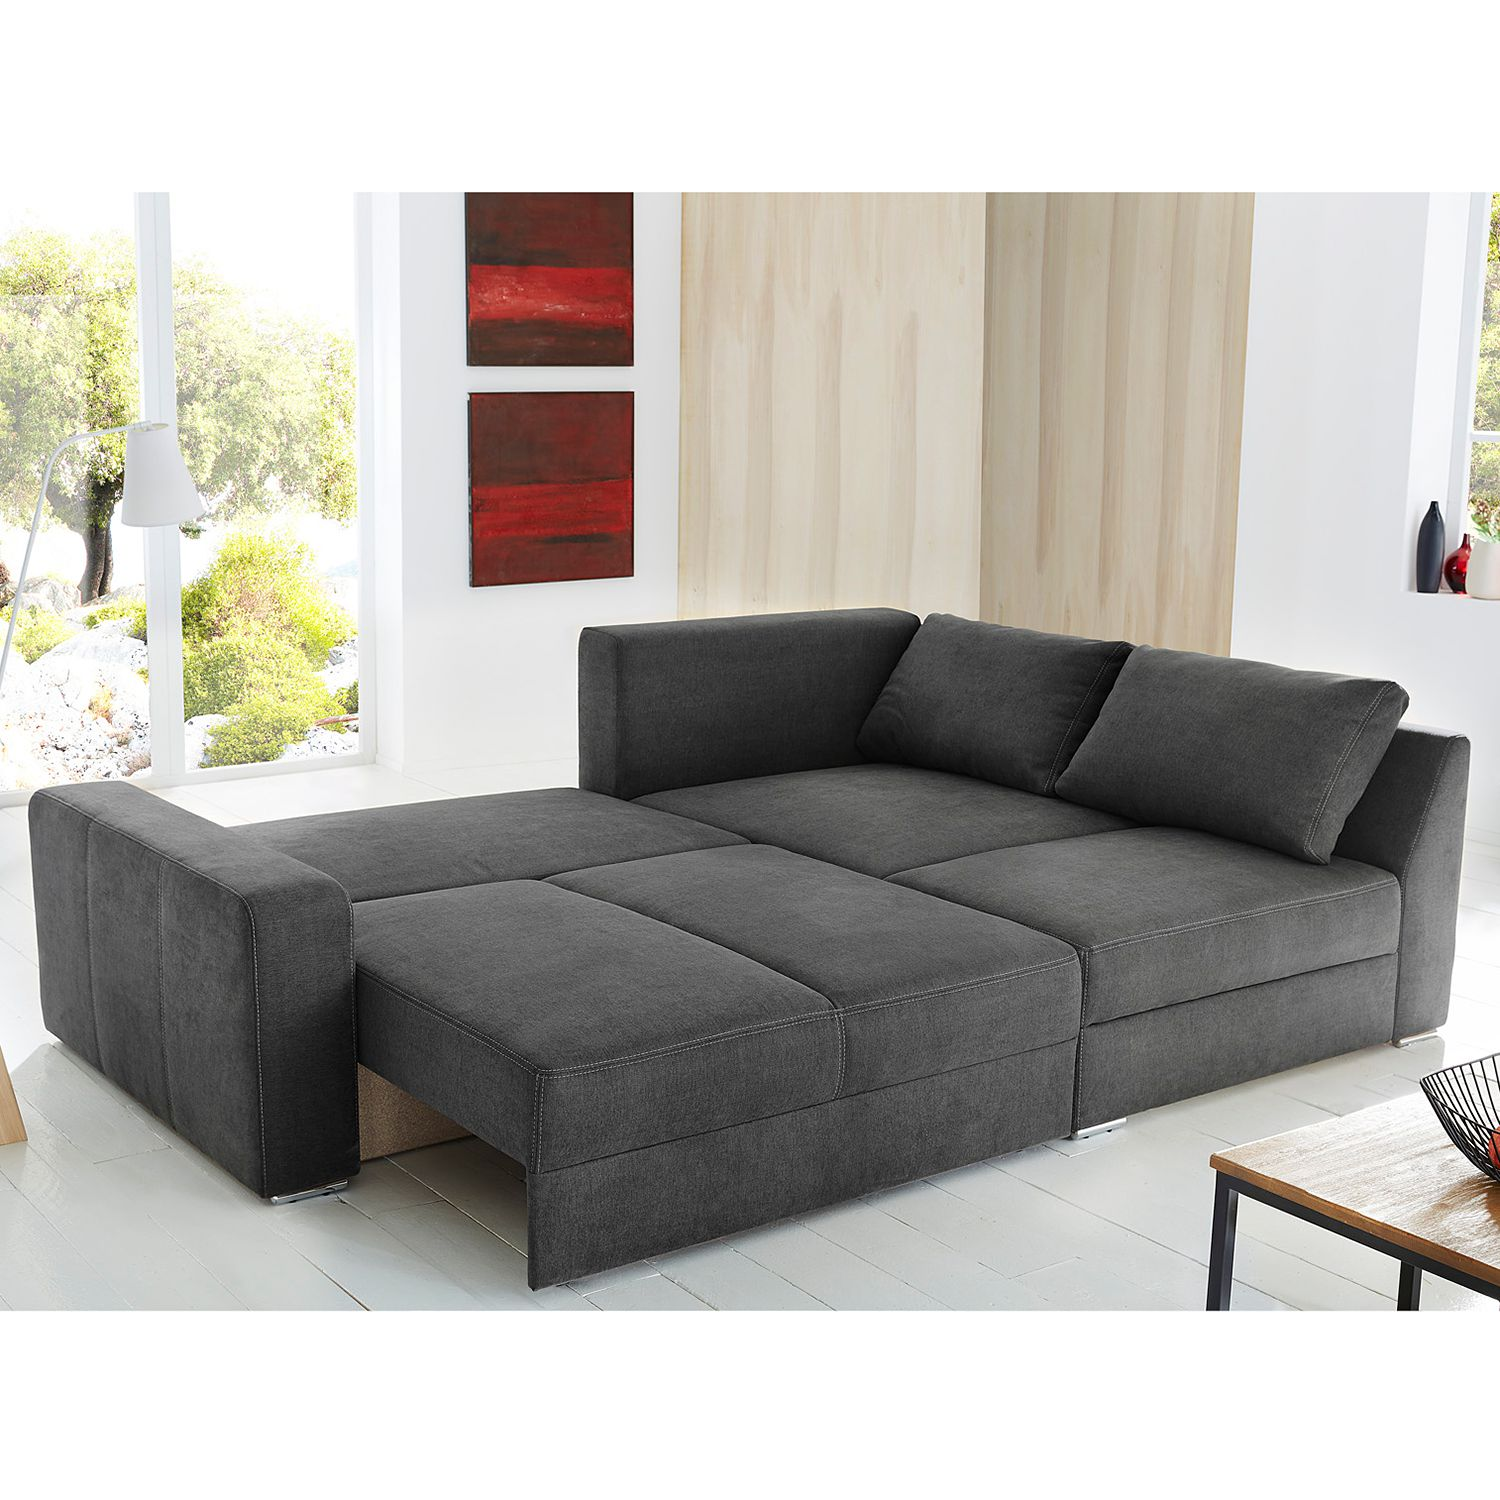 ecksofa mit 2 ottomanen wohn design. Black Bedroom Furniture Sets. Home Design Ideas